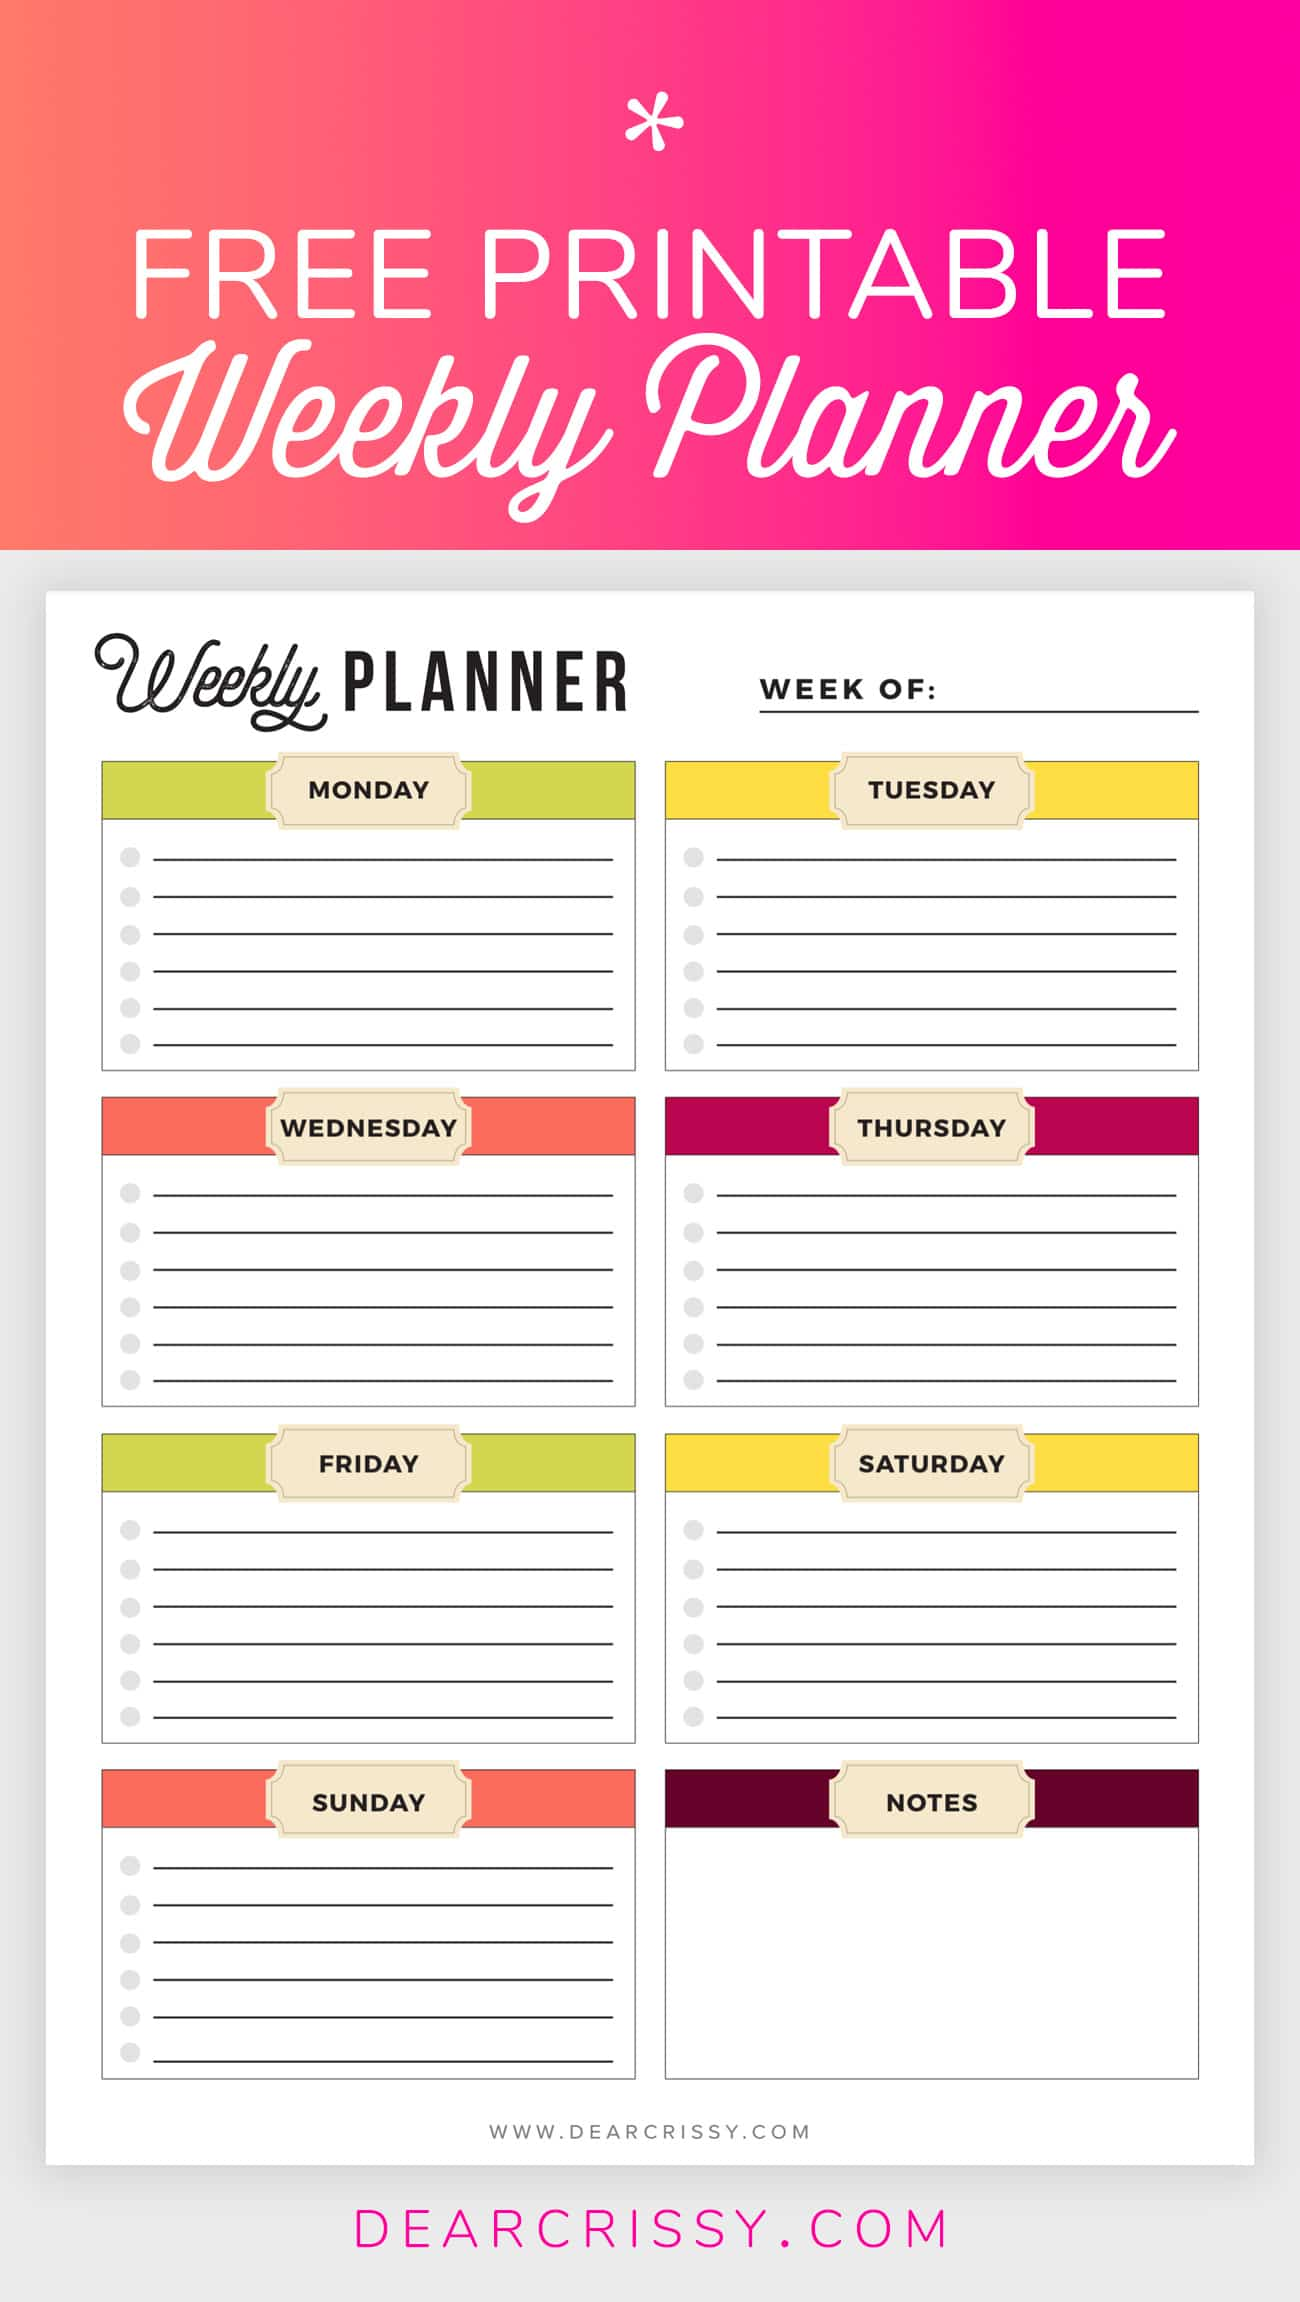 graphic regarding Printable Planners called Cost-free Printable Weekly Planner - Weekly Planner Printable!